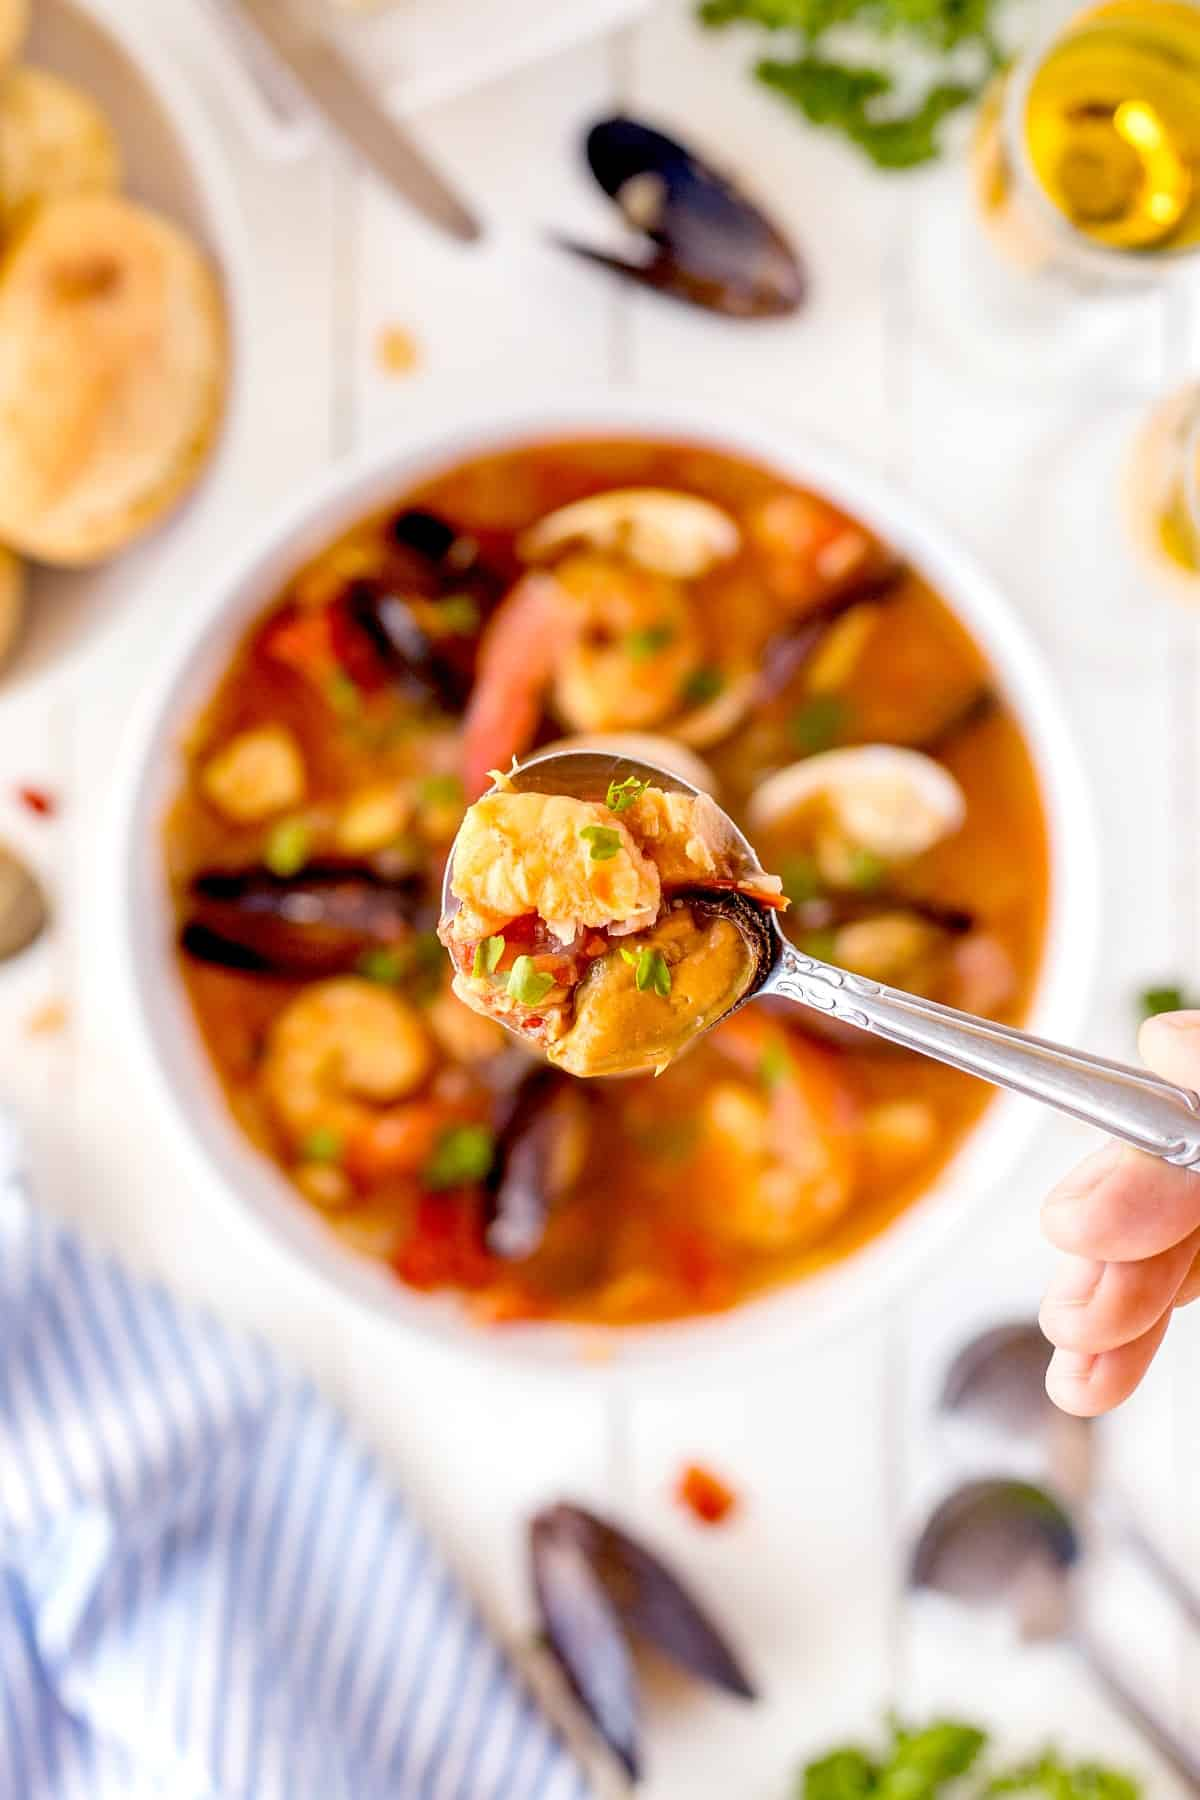 Spoonful of Cioppino